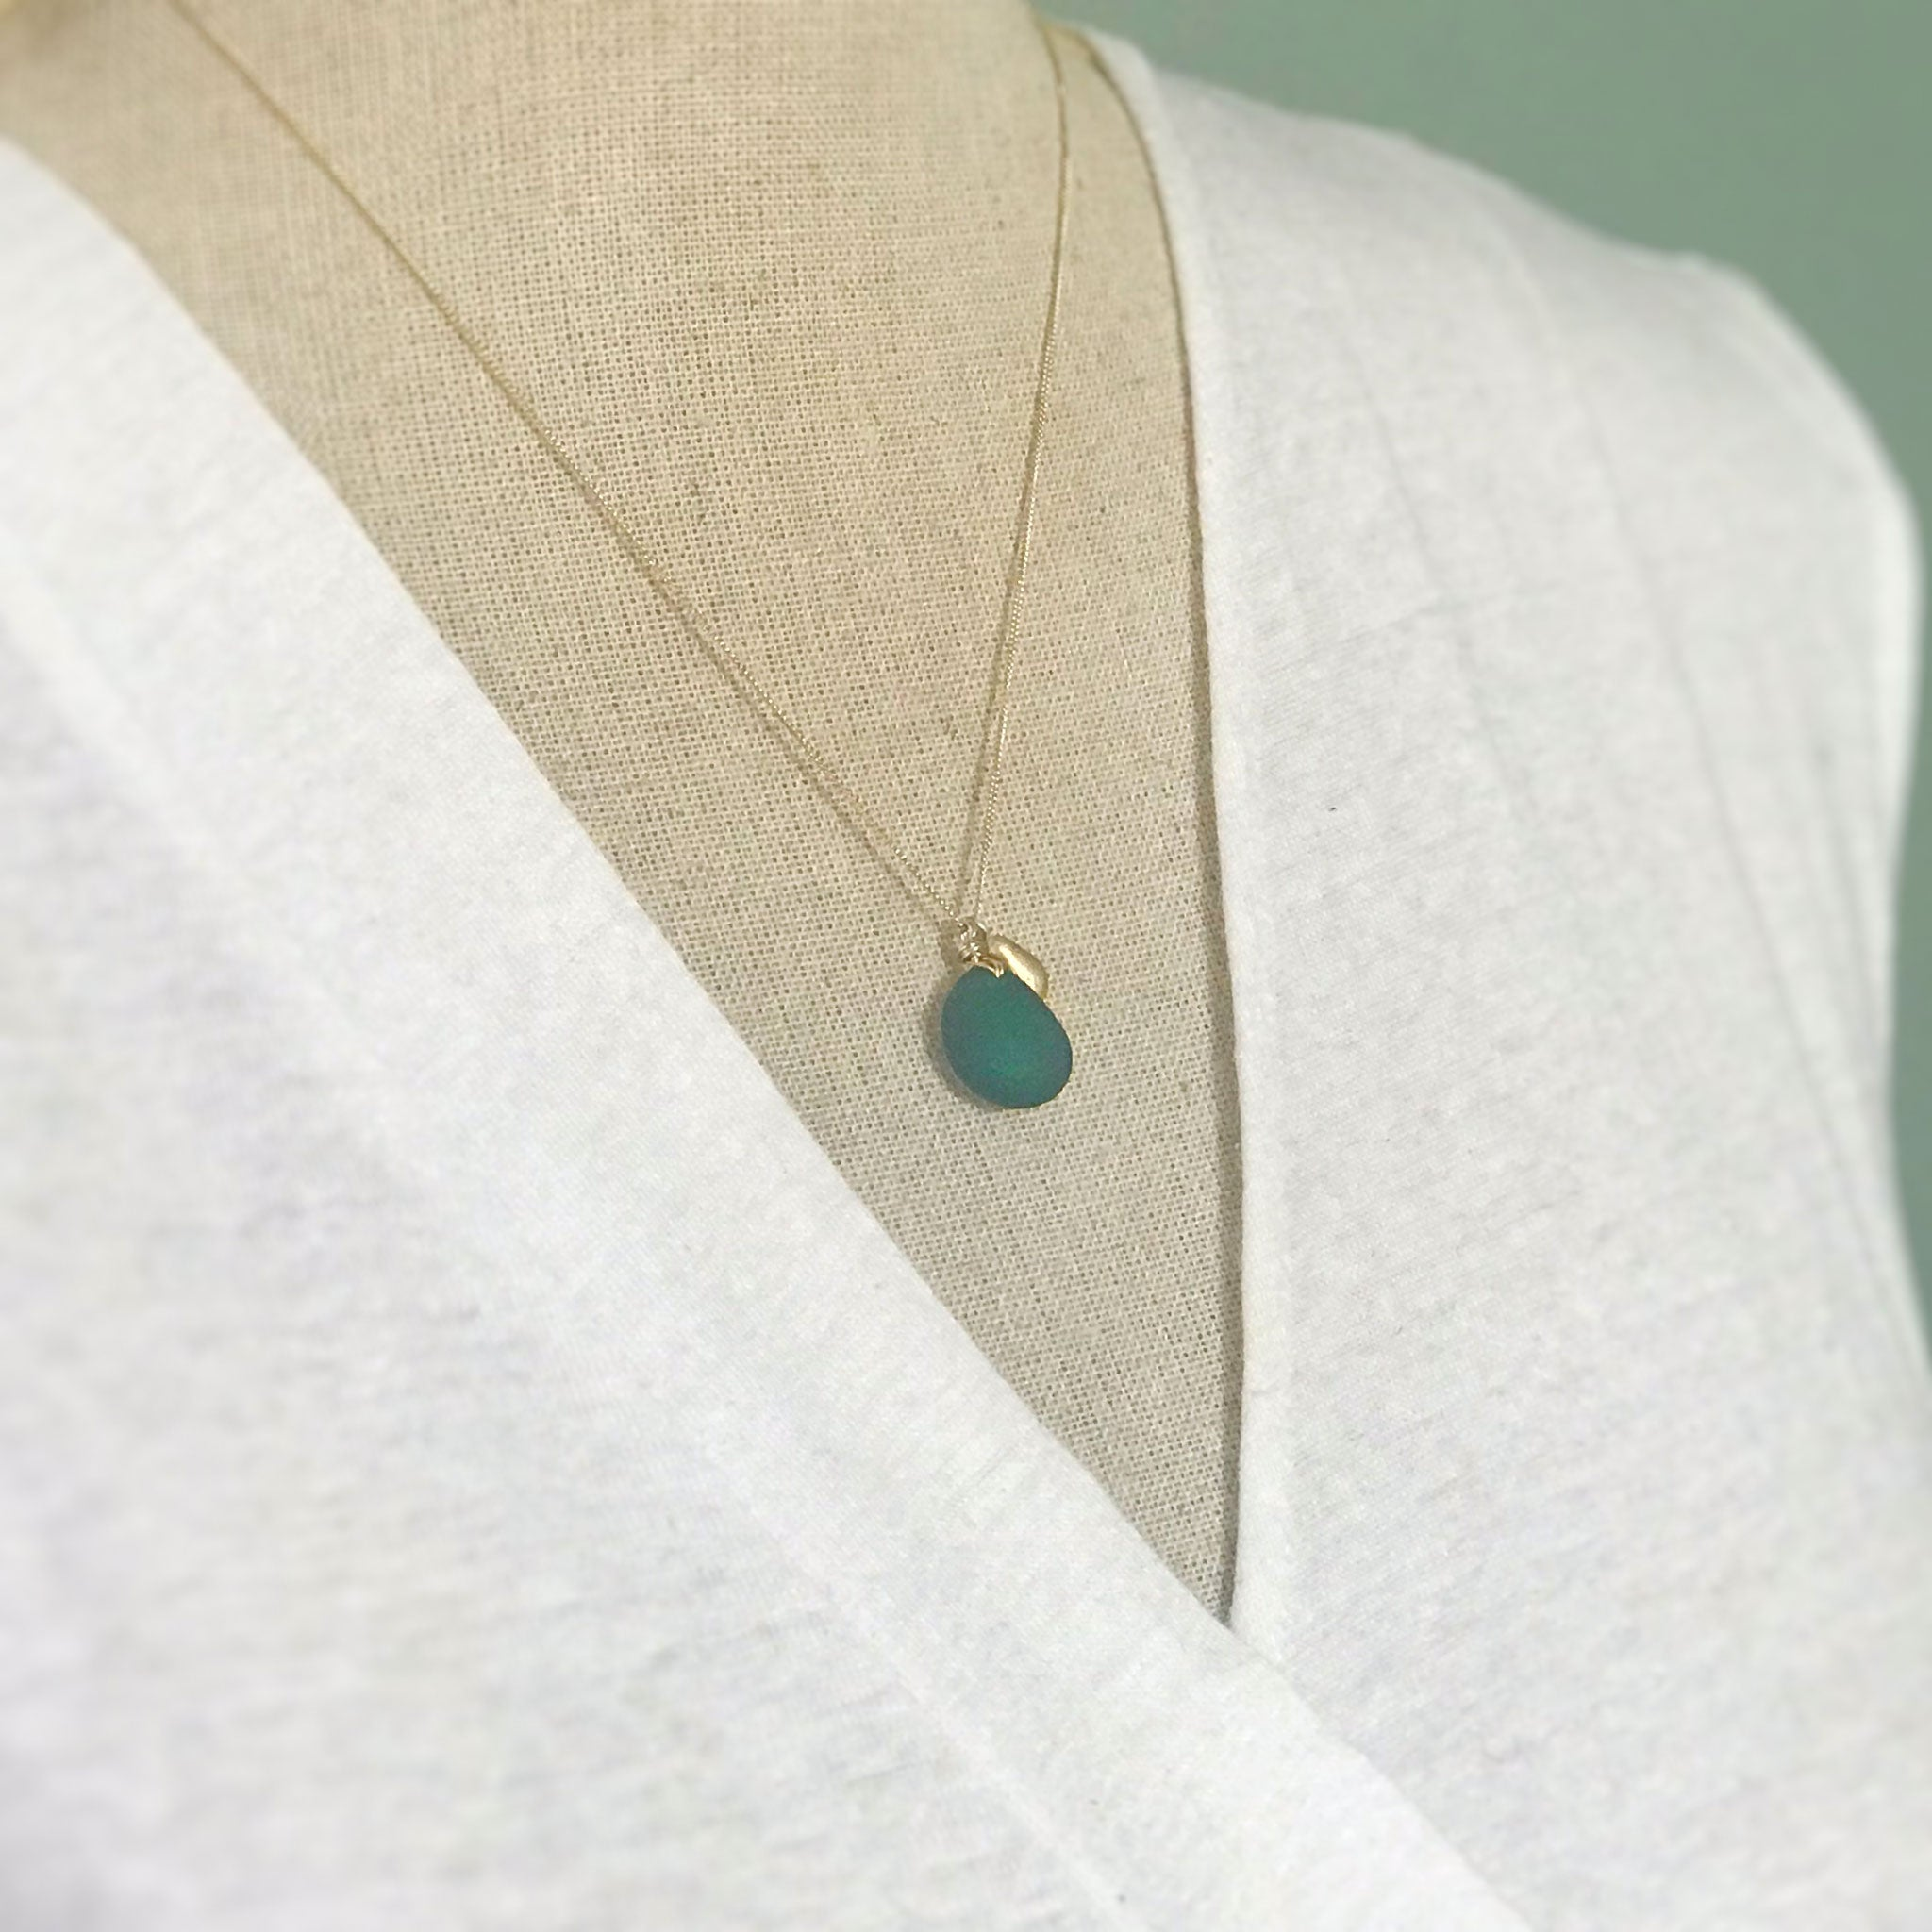 teal seaglass necklace on gold chain with solid 14k gold teardrop charm Kriket Broadhurst jewellery Australian made